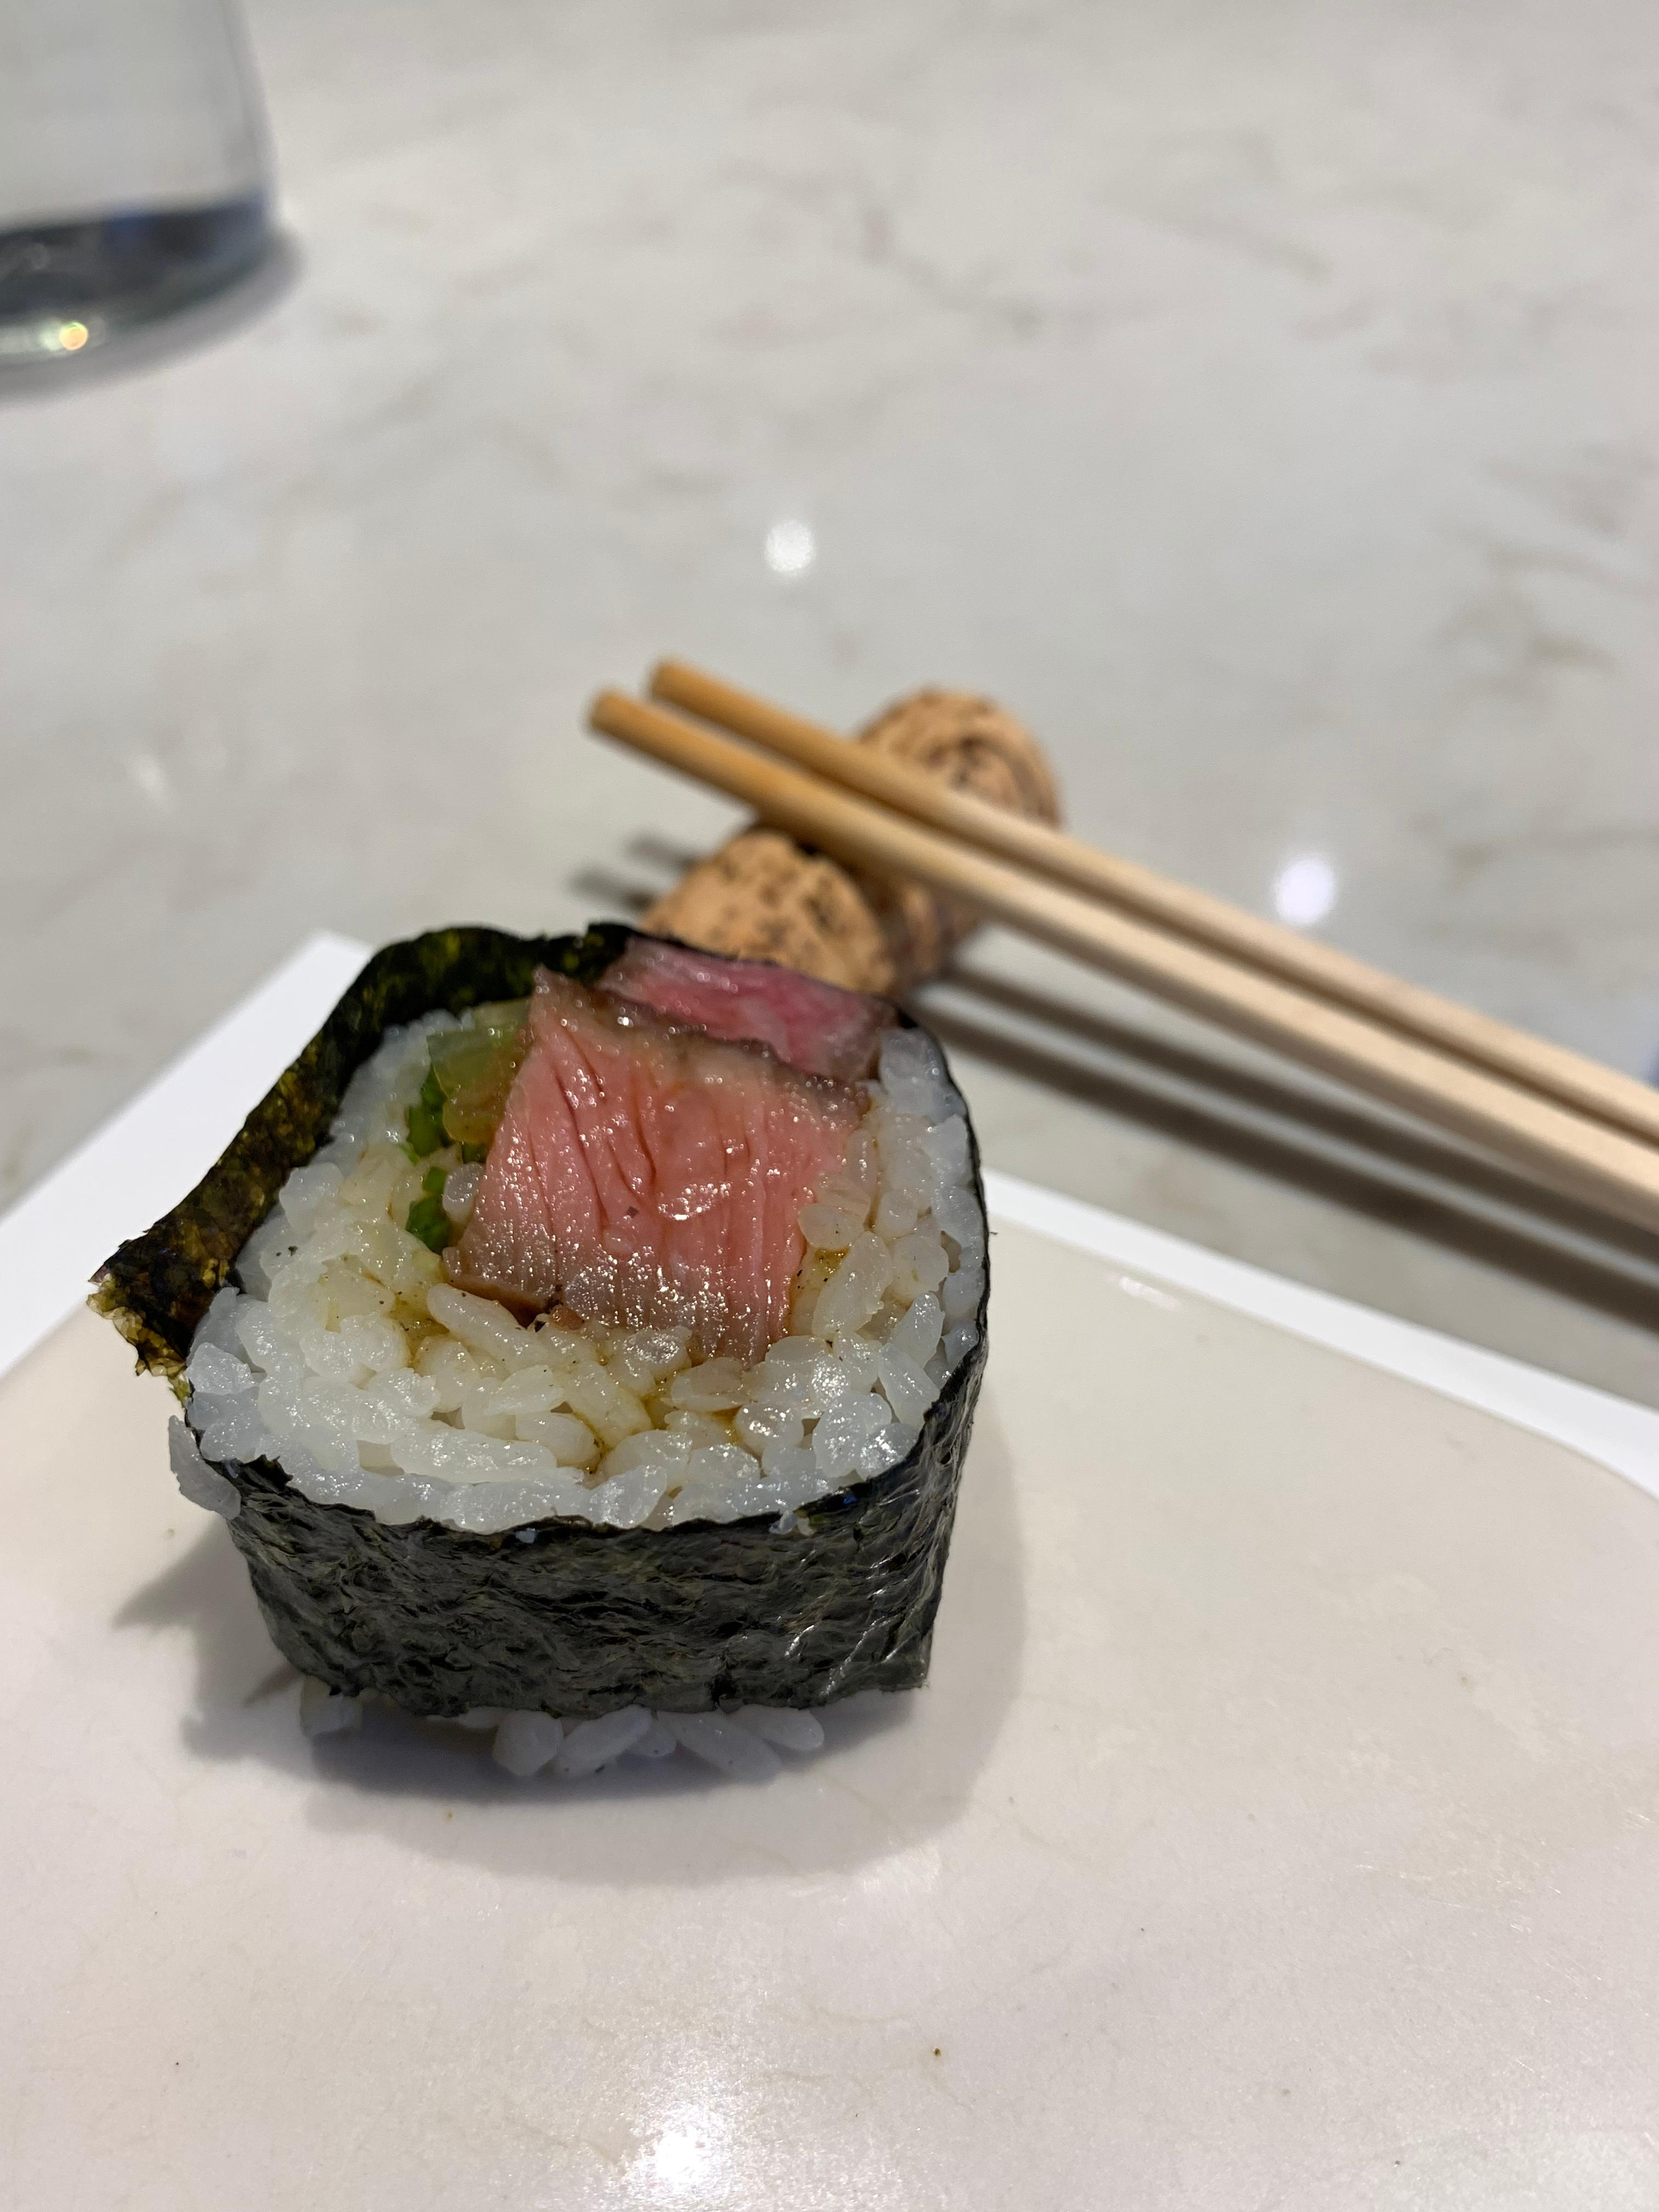 Seared steak roll; prepared sous vide, finished with a sear and served up as a roll. (Image: Frank Guanco)